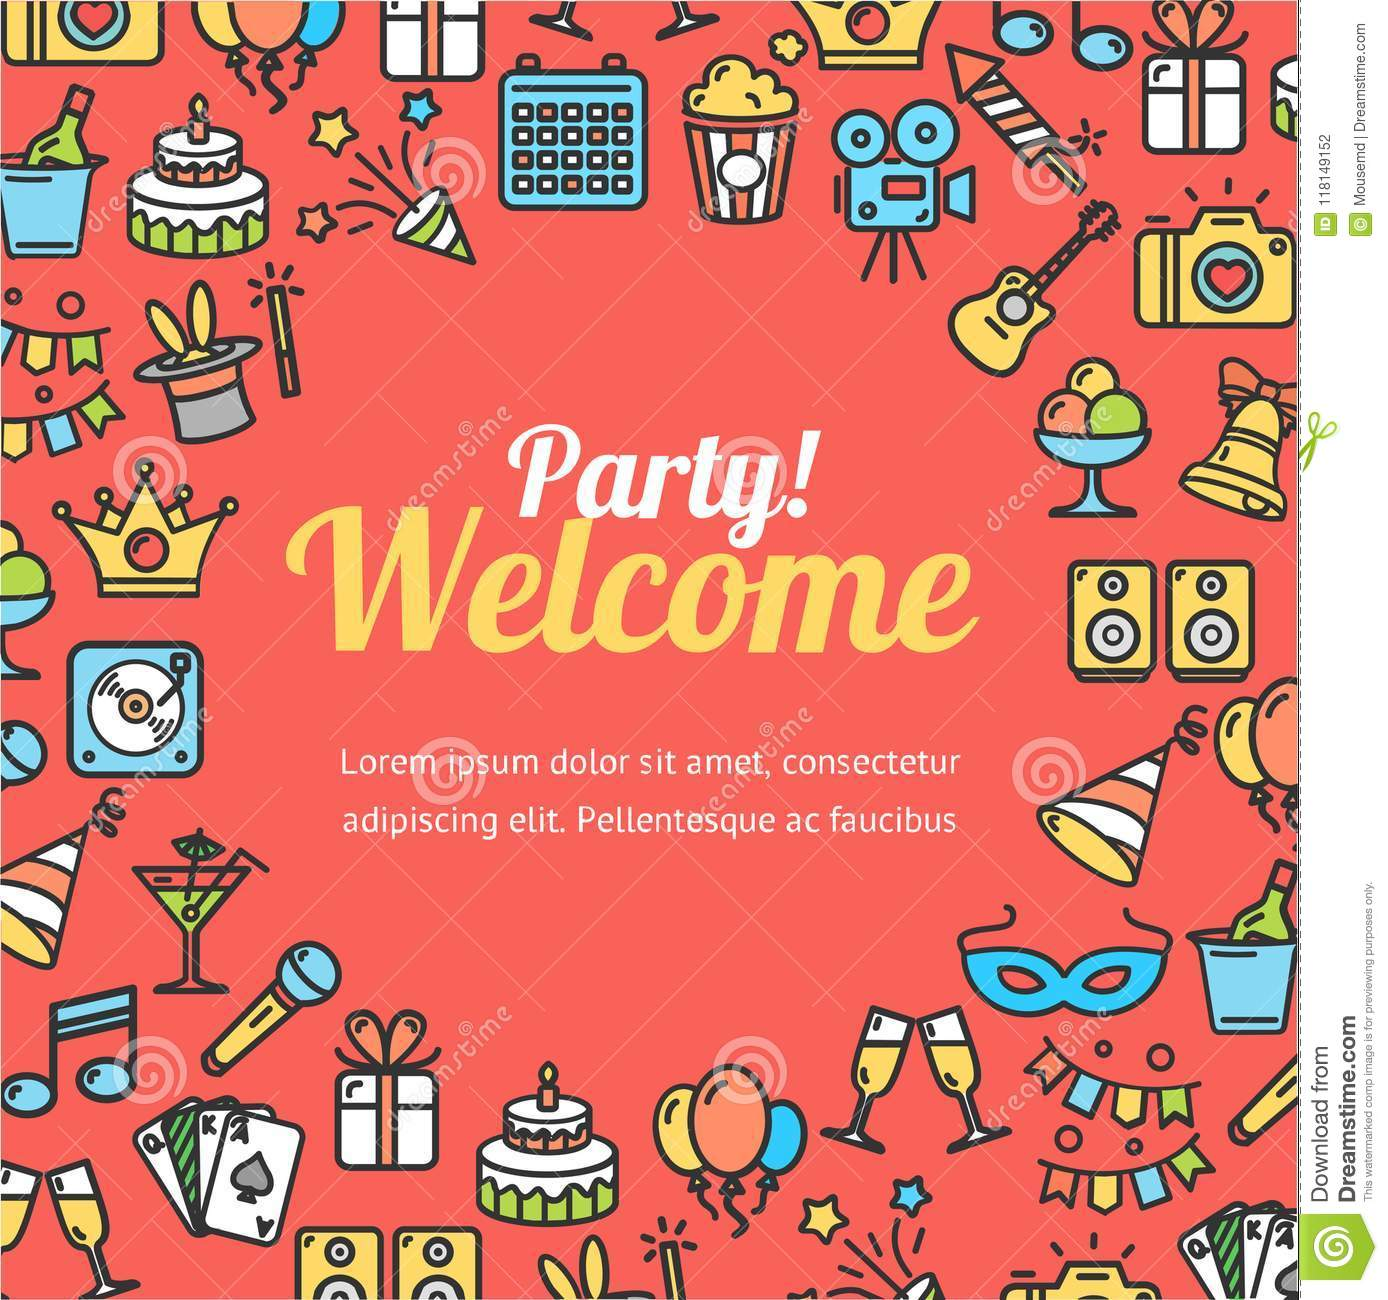 Welcome Party Invitation Card. Vector Stock Vector - Illustration of ...